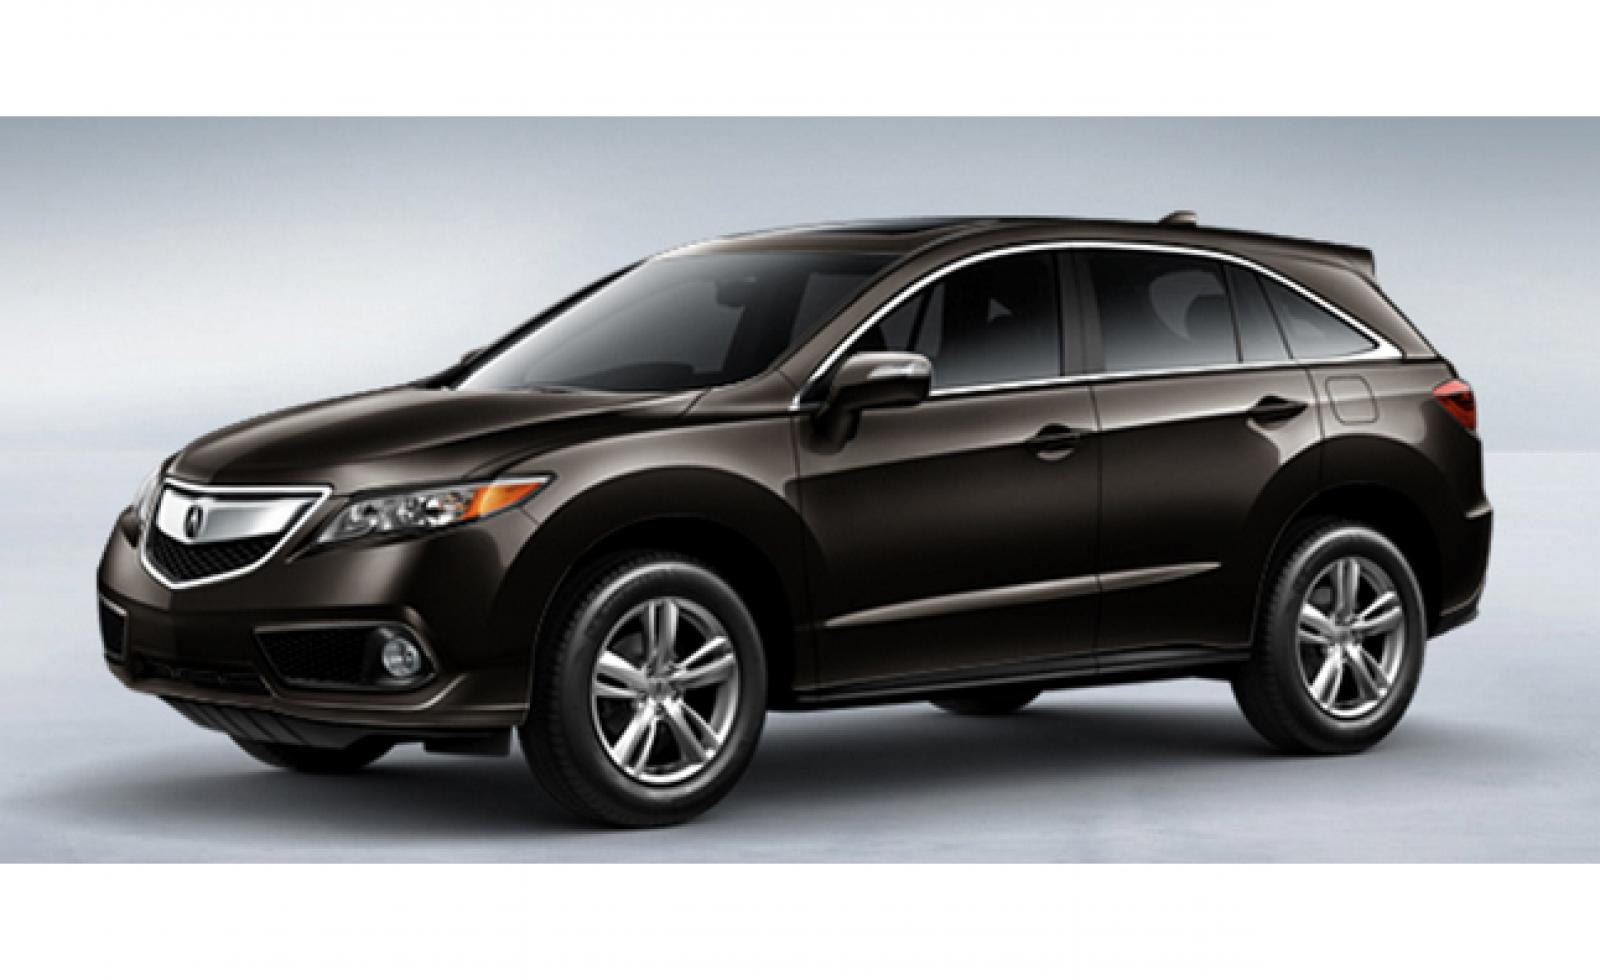 2014 acura rdx information and photos zombiedrive. Black Bedroom Furniture Sets. Home Design Ideas